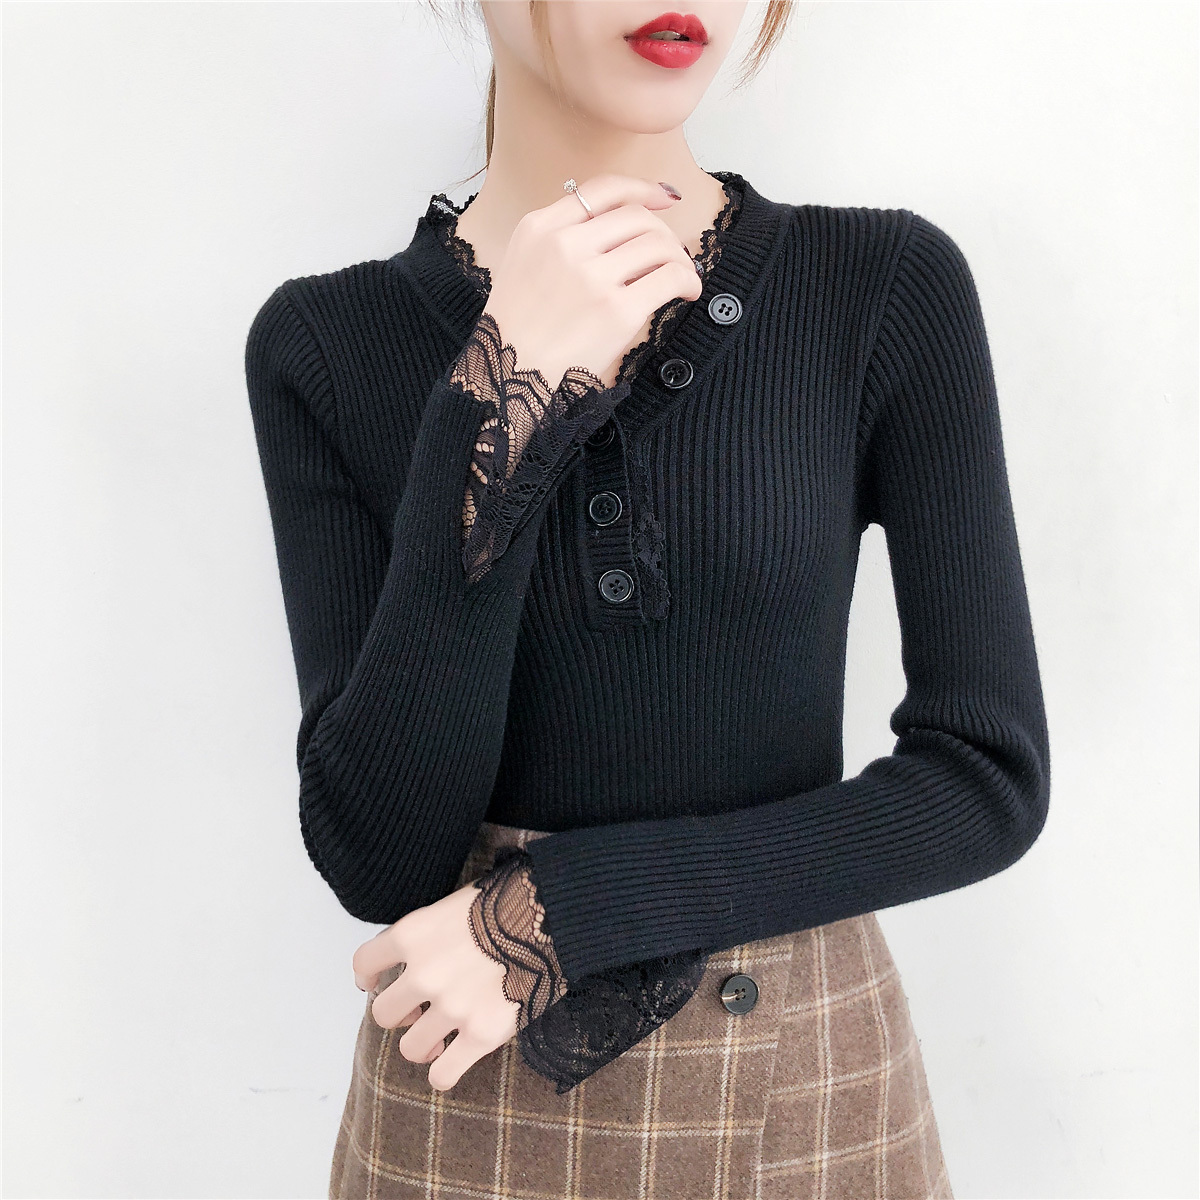 V neck Sweater Women Spring Autumn Slim Knitted Pullover Sweater Female Long Sleeve Lacce Patchwork Sweater Jumper Tops